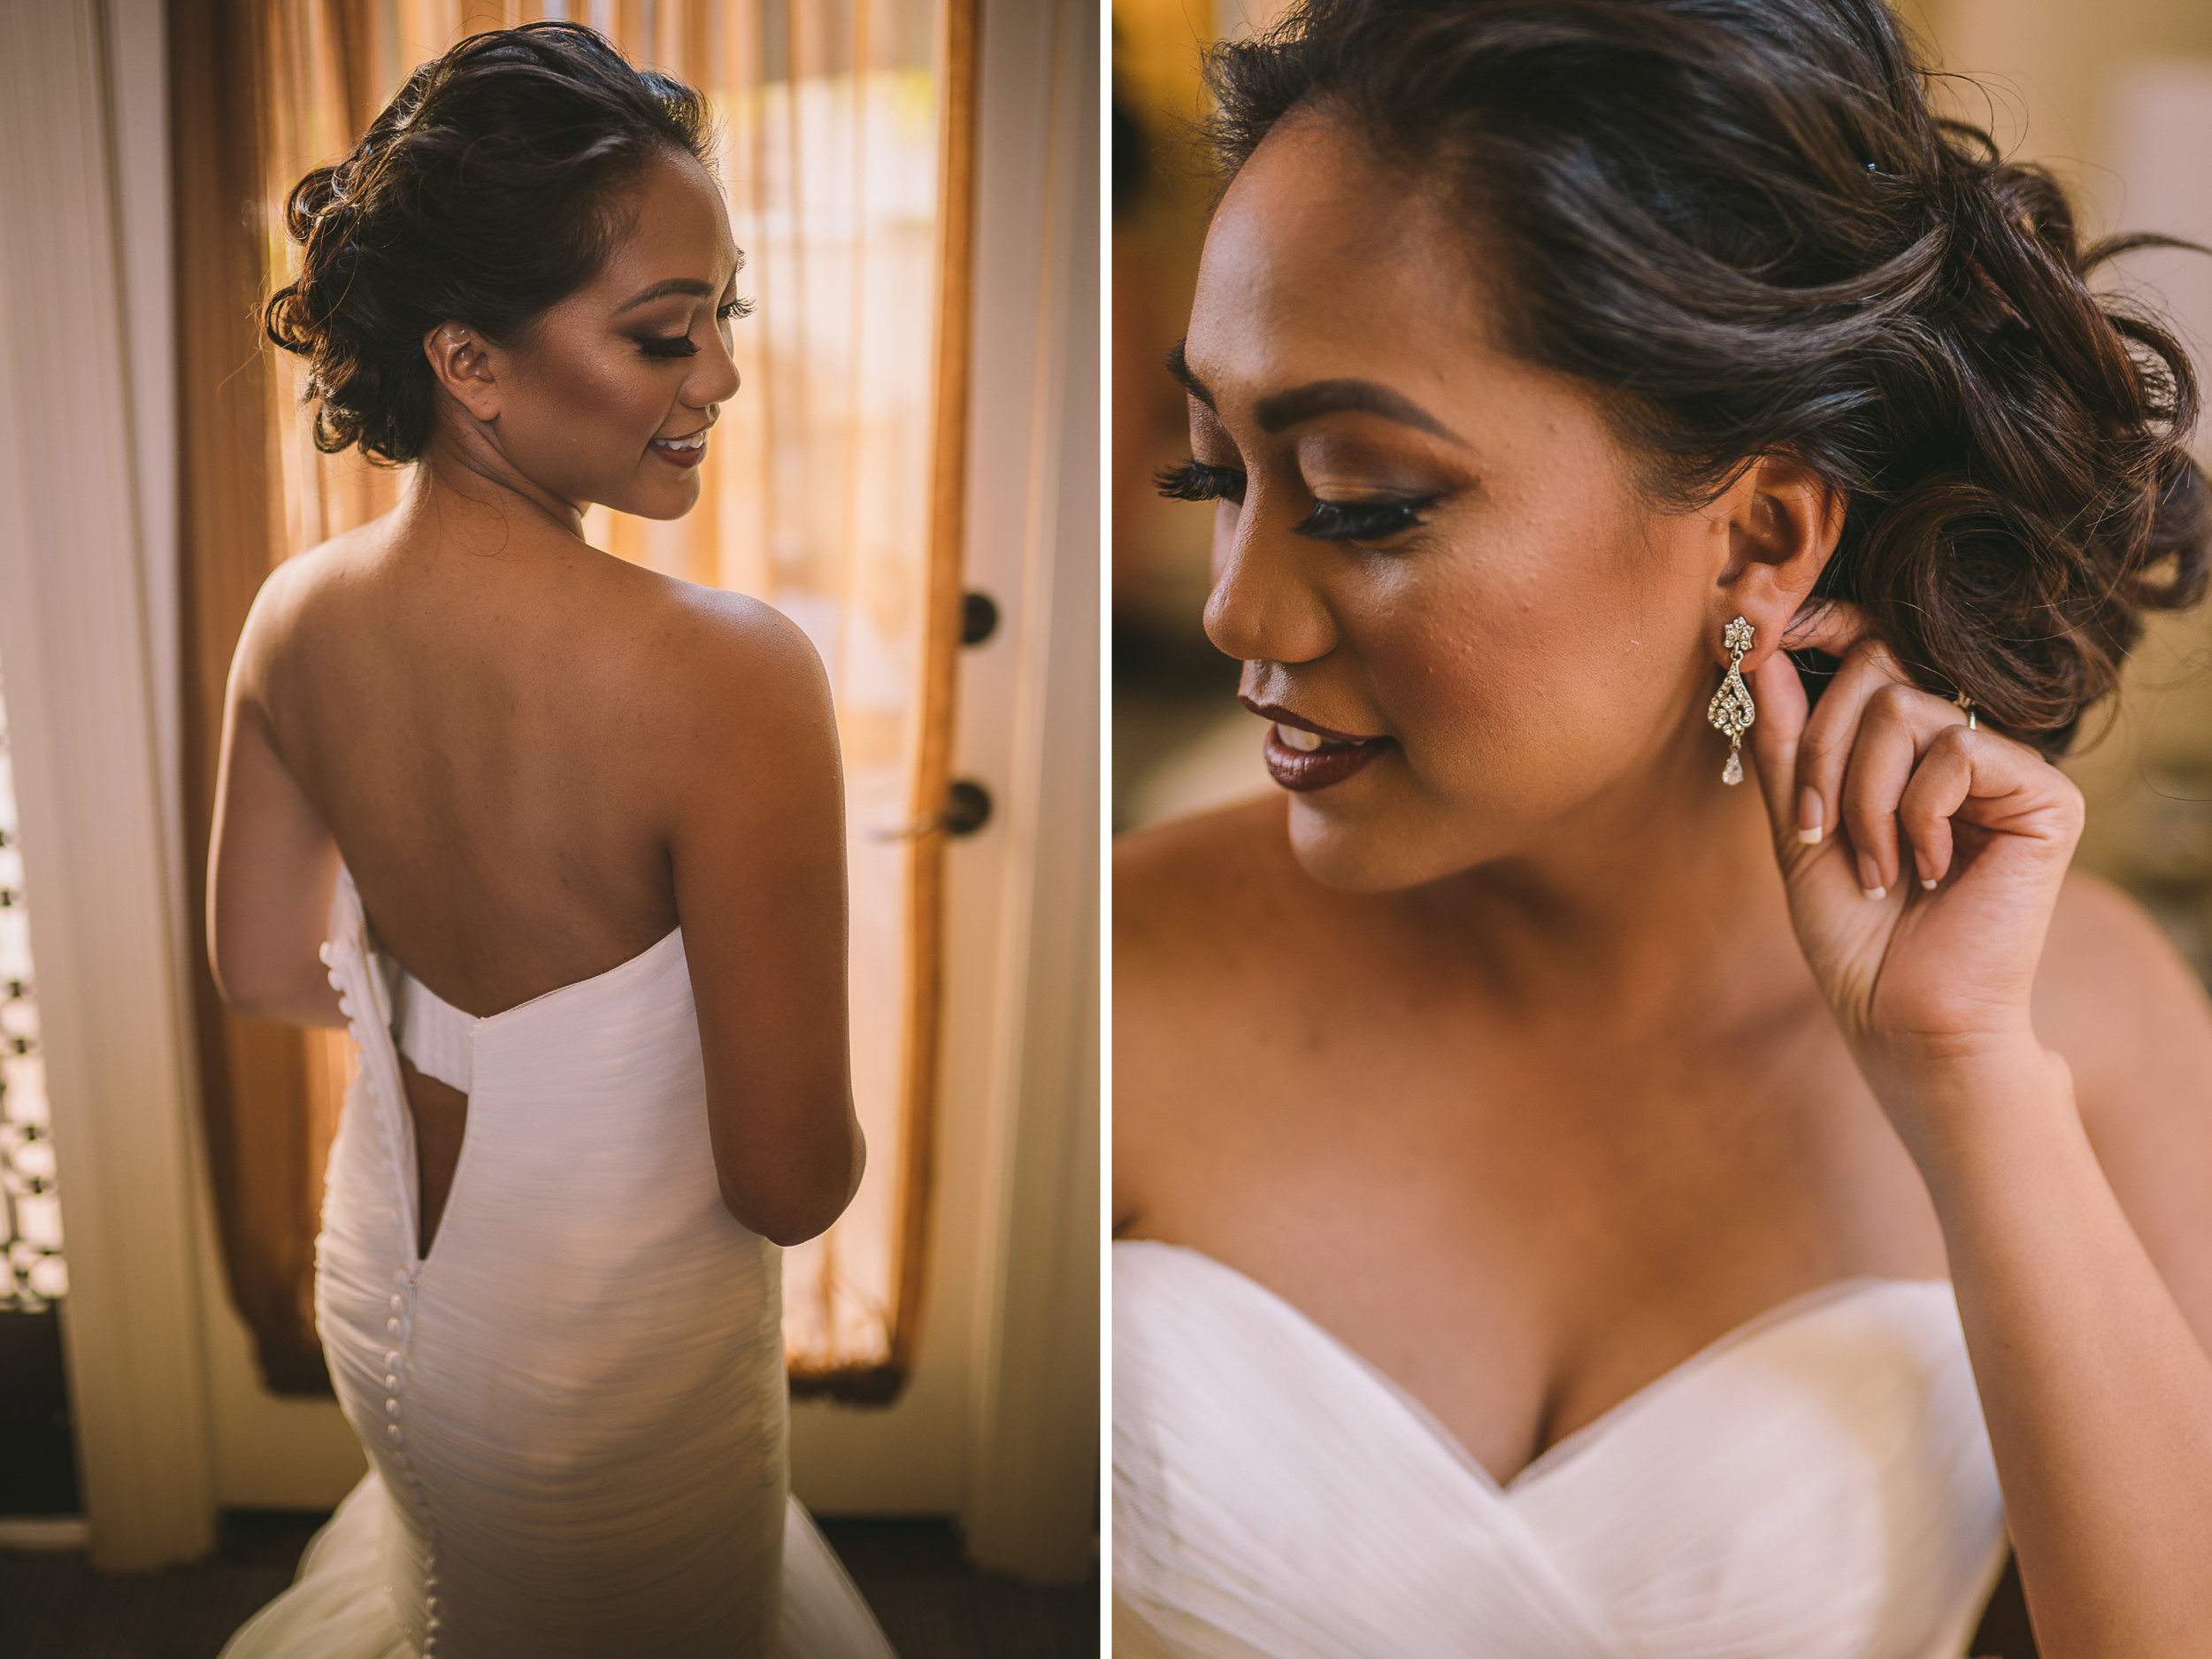 San Diego Wedding Photographer | Glorietta Bay Park | Coronado, San Diego Weddings